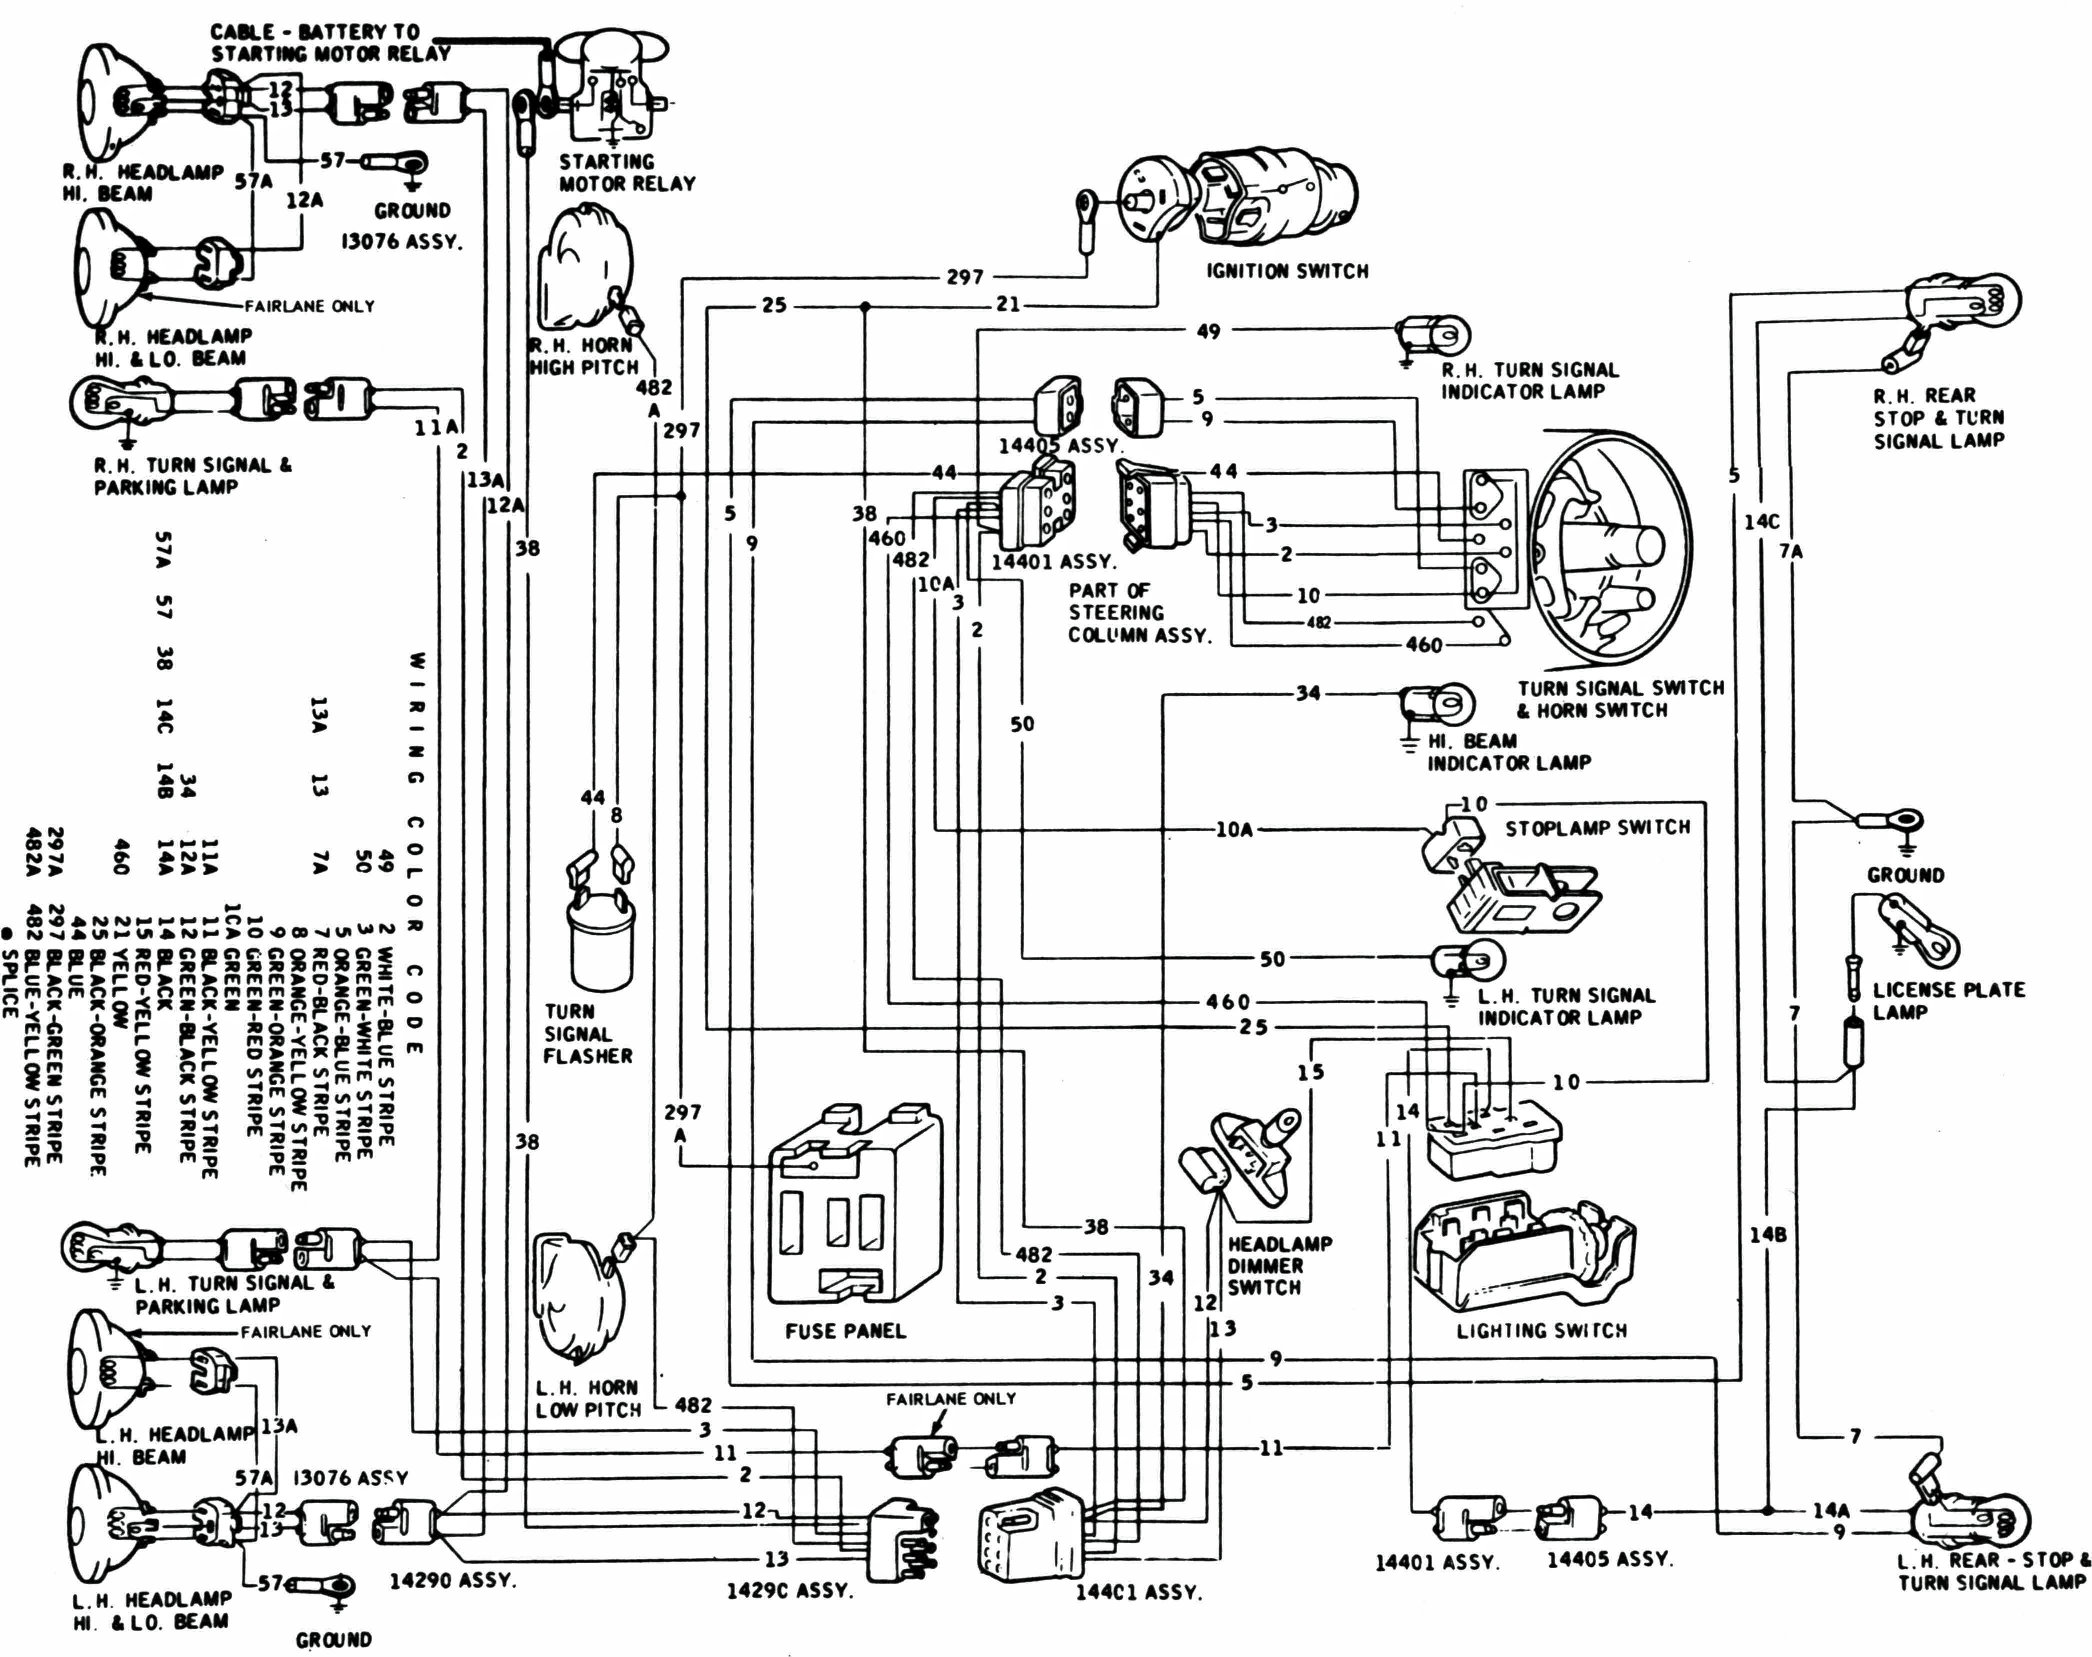 1967 Ford Mustang Wiring Diagrams Wiring Diagram Reguler Reguler Consorziofiuggiturismo It